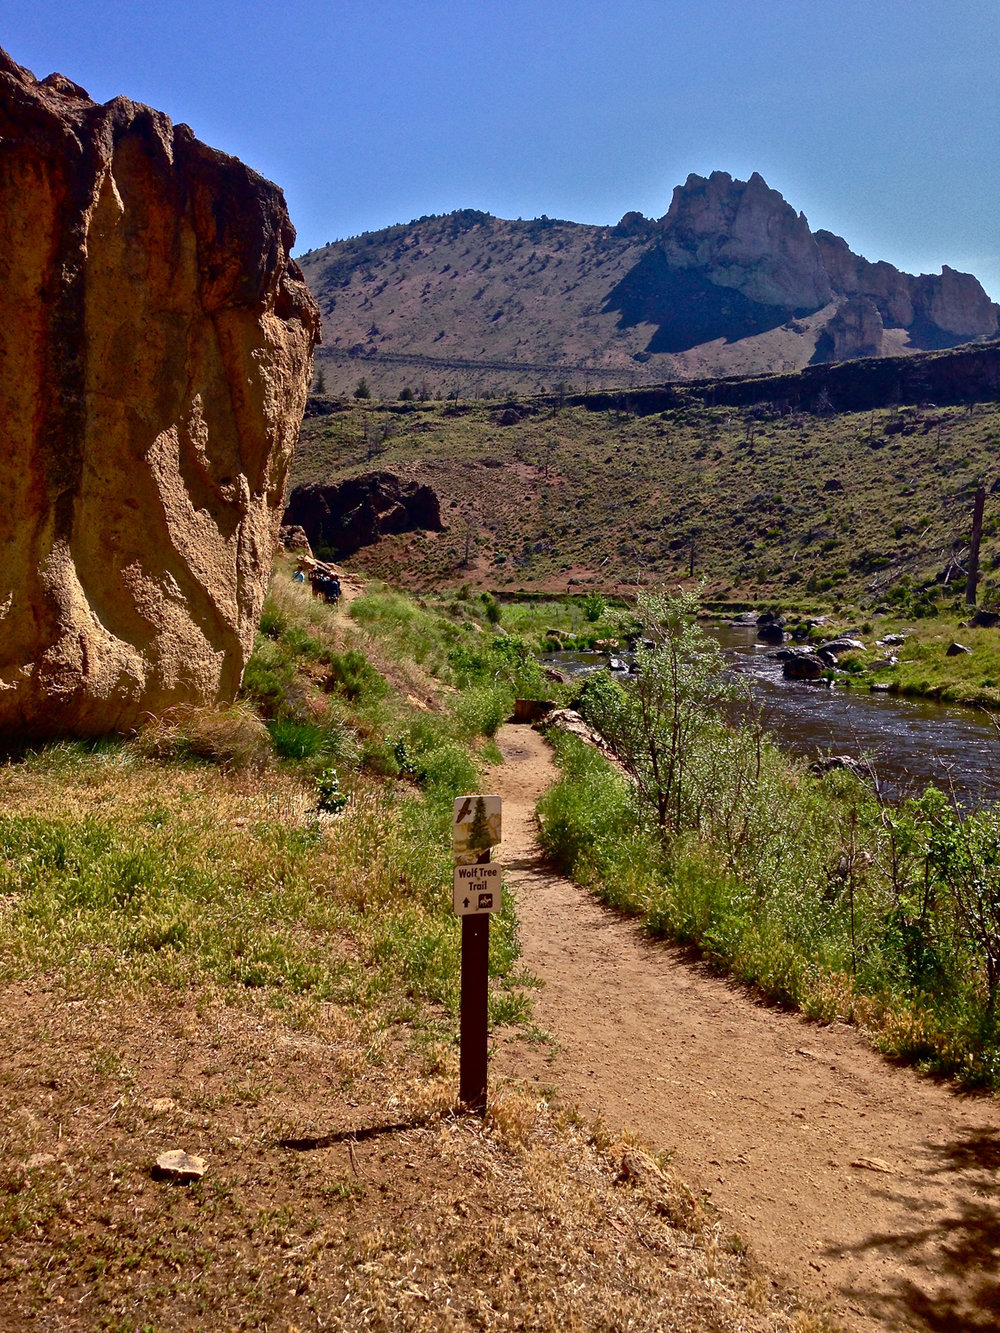 The Wolf Tree Trail at Smith Rock State Park is great for watching climbers as you go around the rock walls.